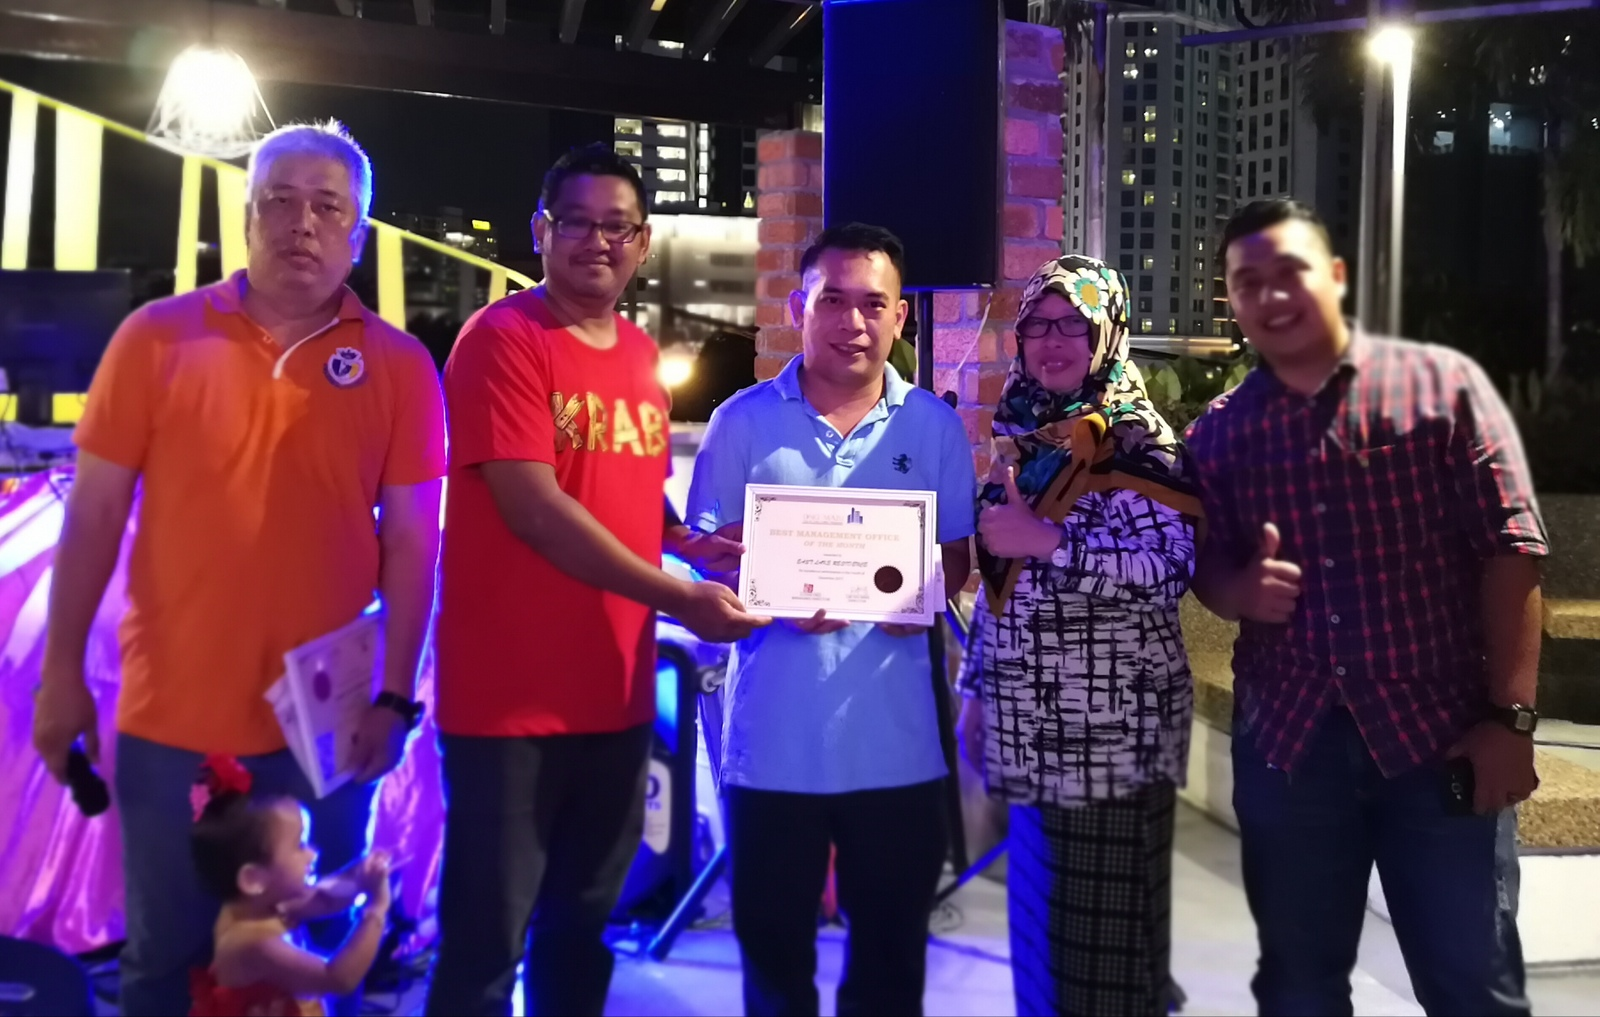 Best Performing Team for the month of December 2017 - East Lake Residence manager received reward